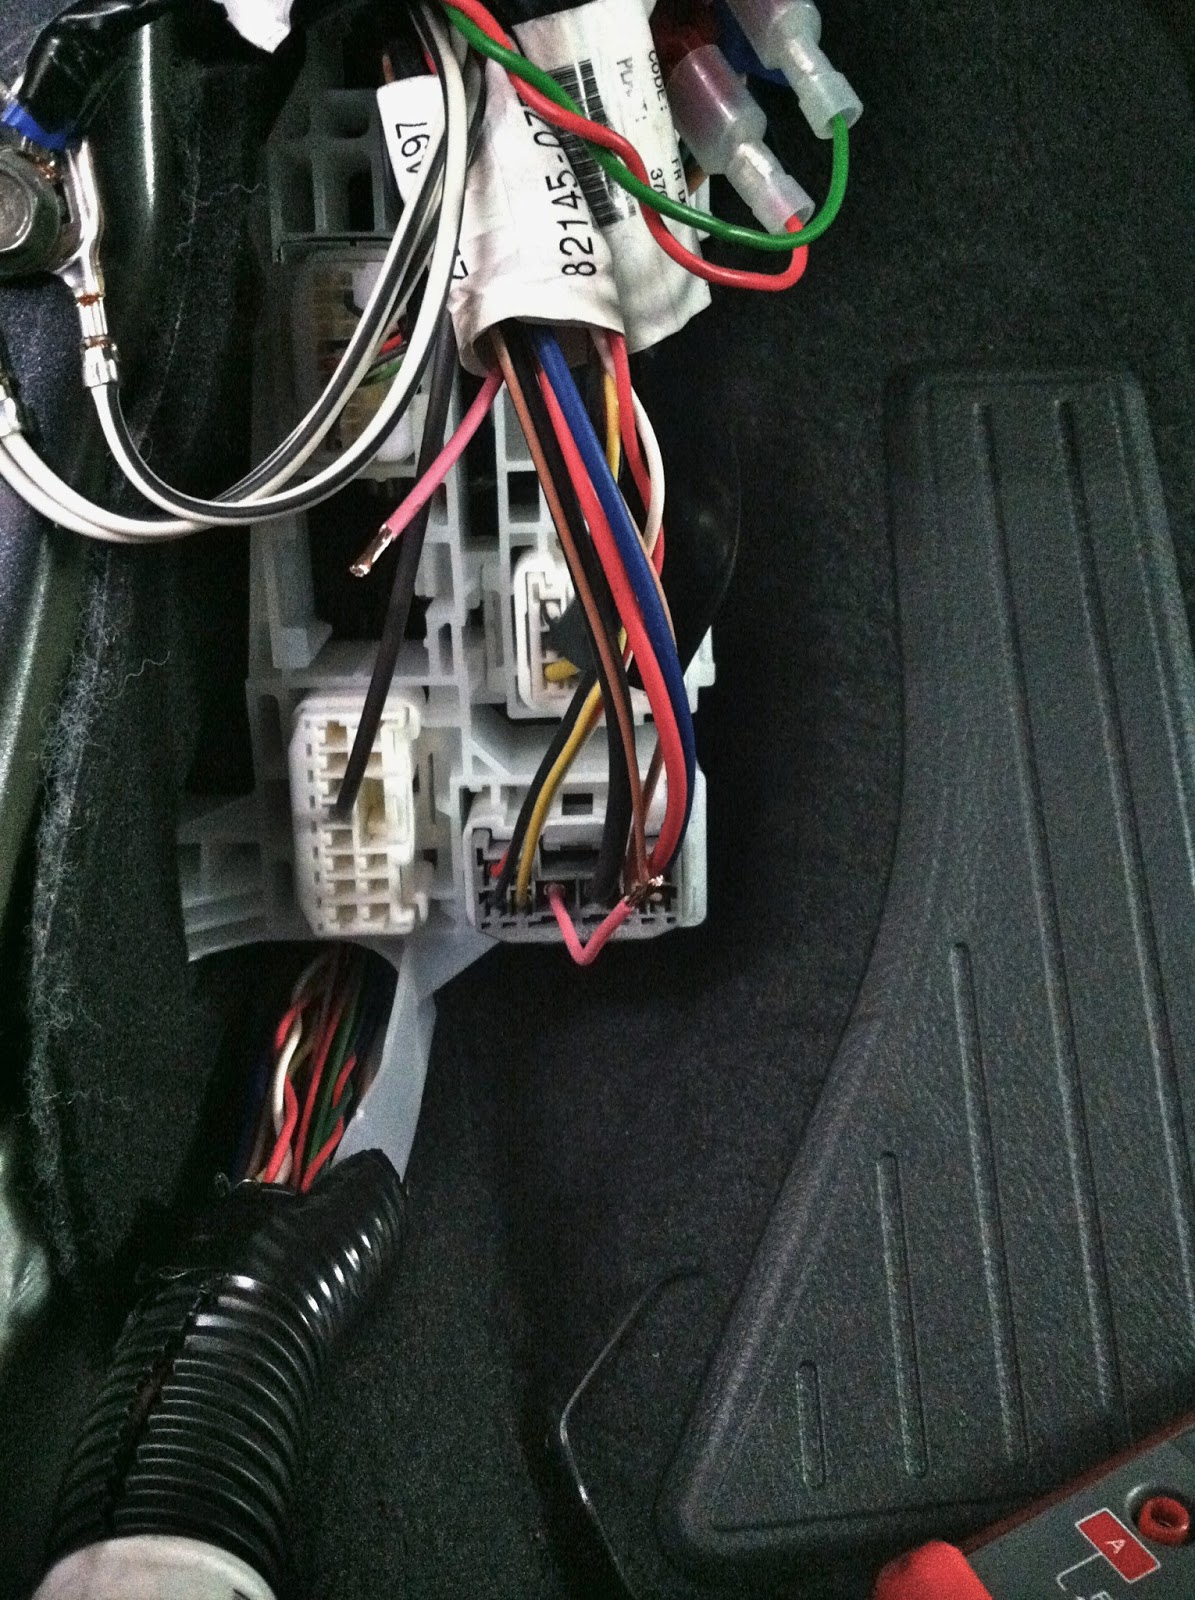 2011 Toyota Corolla Alarm Wiring Diagram - WIRE Center •